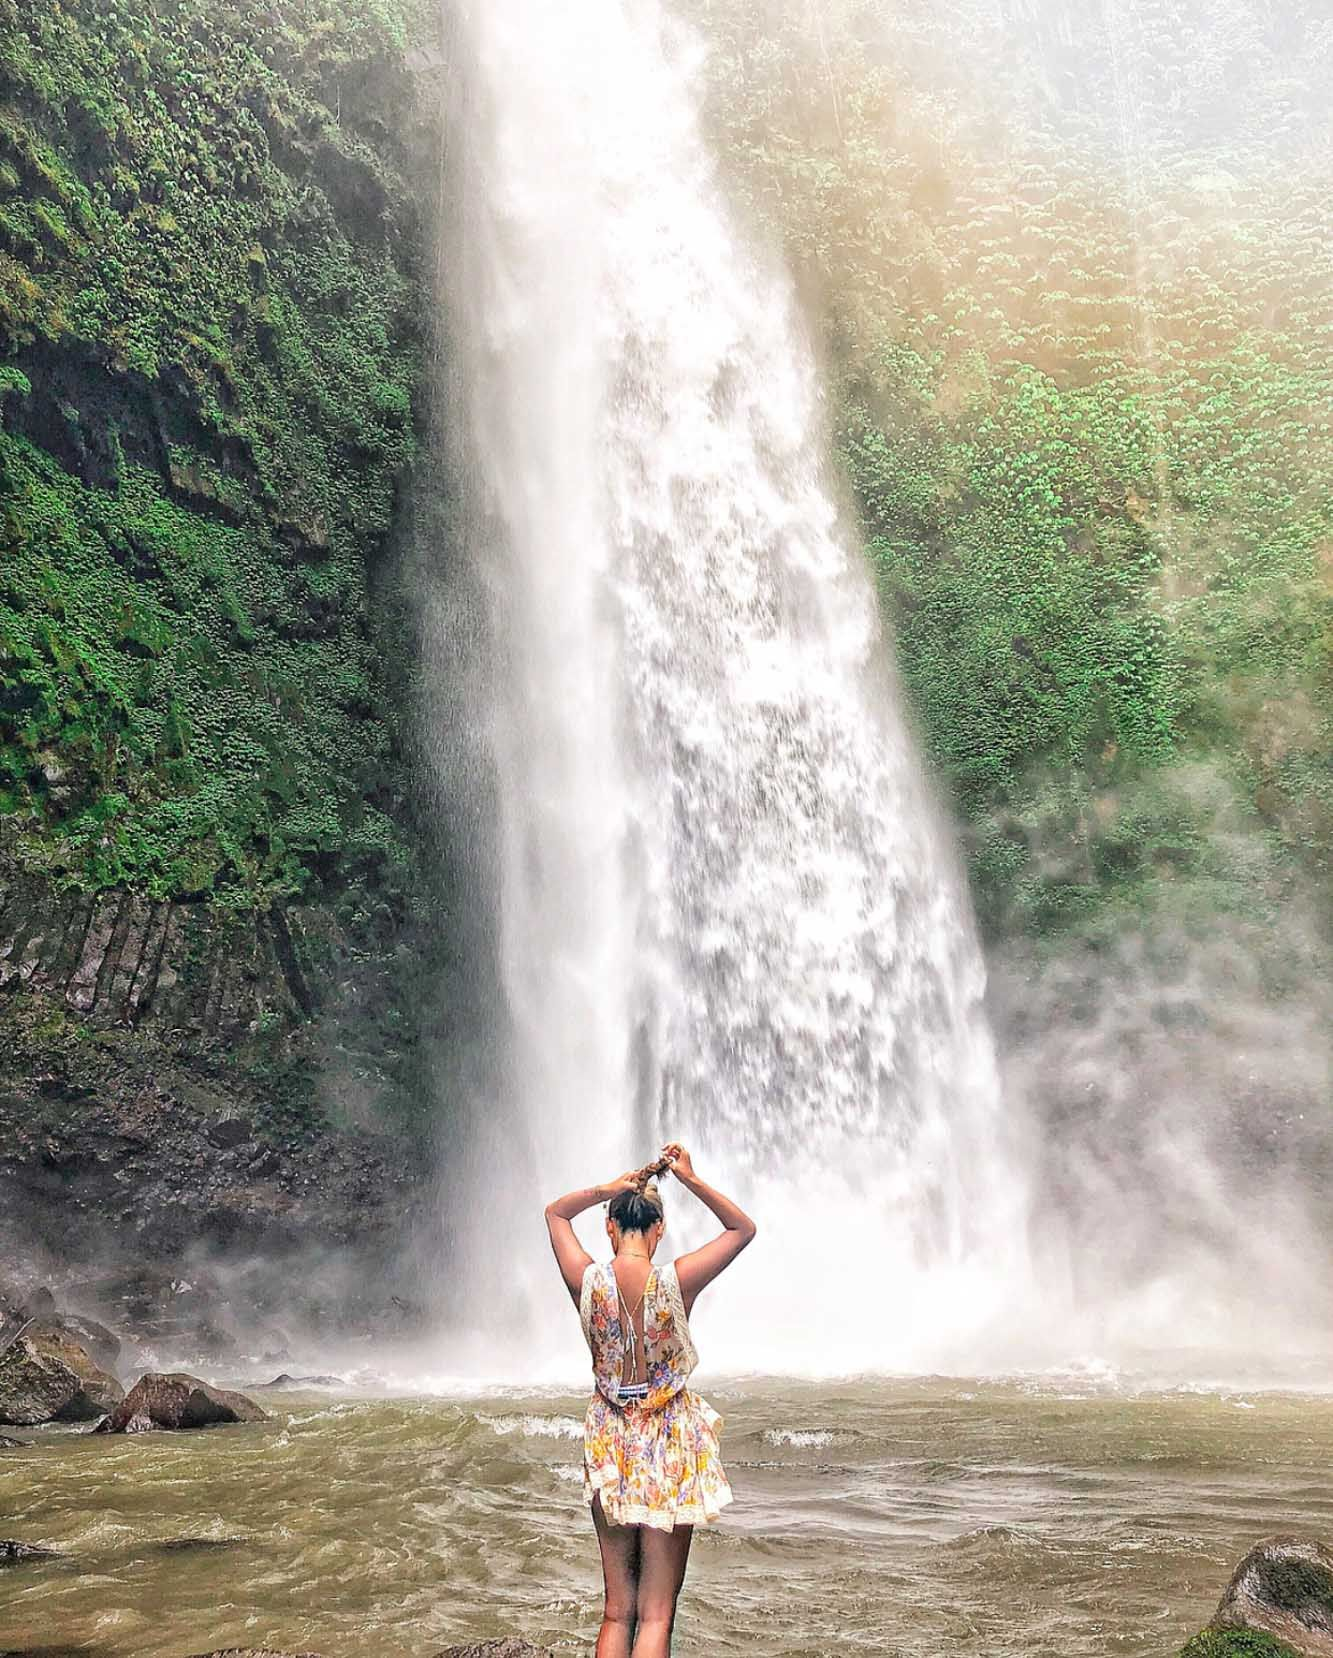 Nung Nung Waterfall - Best Waterfalls in Bali